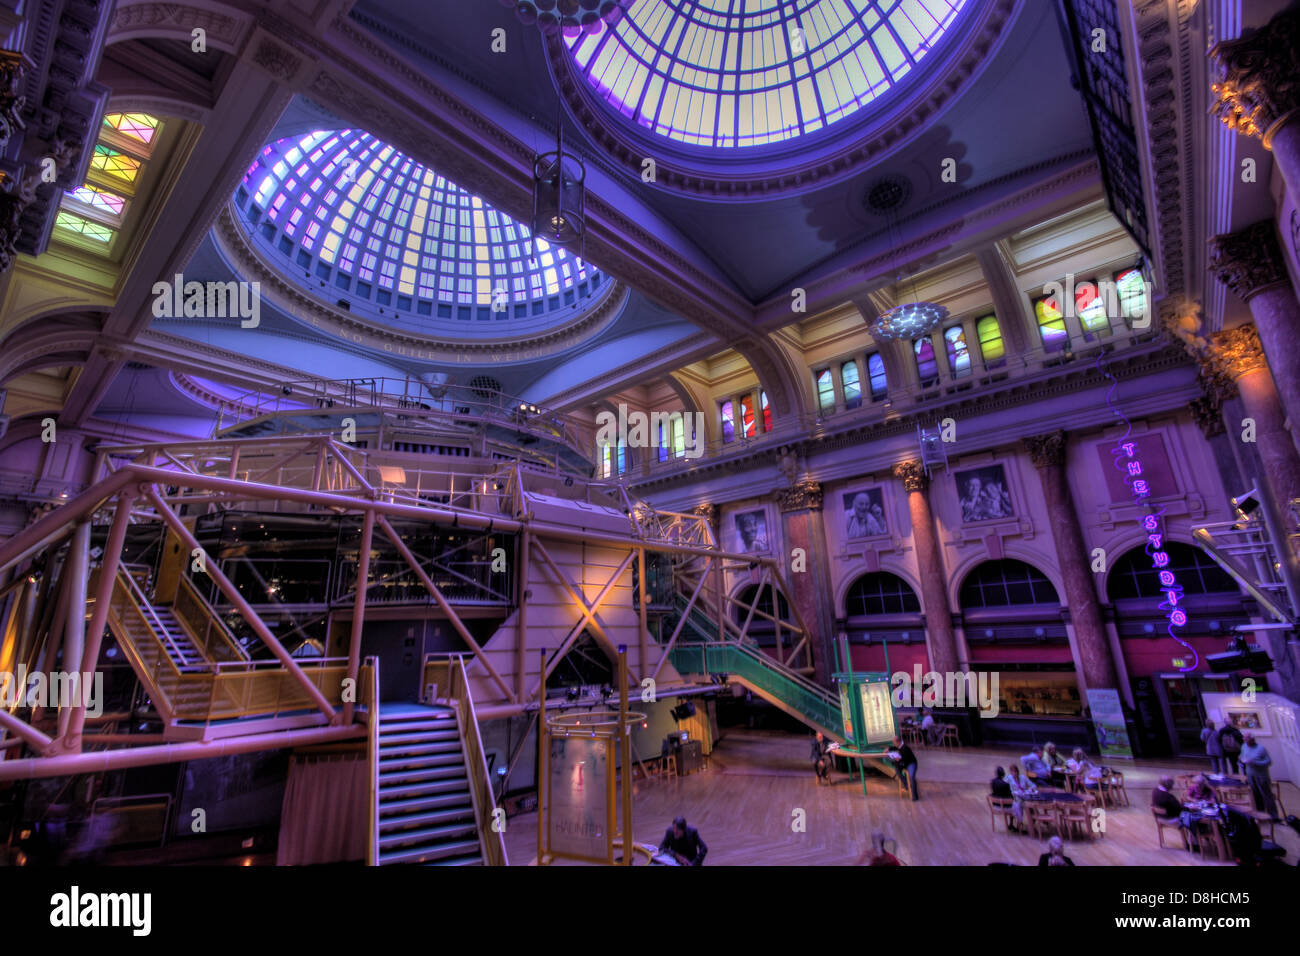 Inside,Corn,cornexchange,cotton,king,kingcotton,cottonopolis,drama,comedy,show,shows,gradeII,grade2,anns,stained,glass,dome,domed,domes,Mills,&,Murgatroyd,pod,Lancs,building,St Anns Square Manchester Lancashire England UK Purple,Gotonysmith St Anns Square,Exchange Street,Market Street,Cross Street and Old Bank Street,Mancester,@HotpixUK,Tony,Smith,UK,GB,Great,Britain,United,Kingdom,English,British,England,English,England,Shakespeare,tourism,tourist,tour,destination,city,centre,Mancunian,Manc,Buy Pictures of,Buy Images Of,Stock Images,Tony Smith,United Kingdom,Great Britain,British Isles,Manchester City Centre